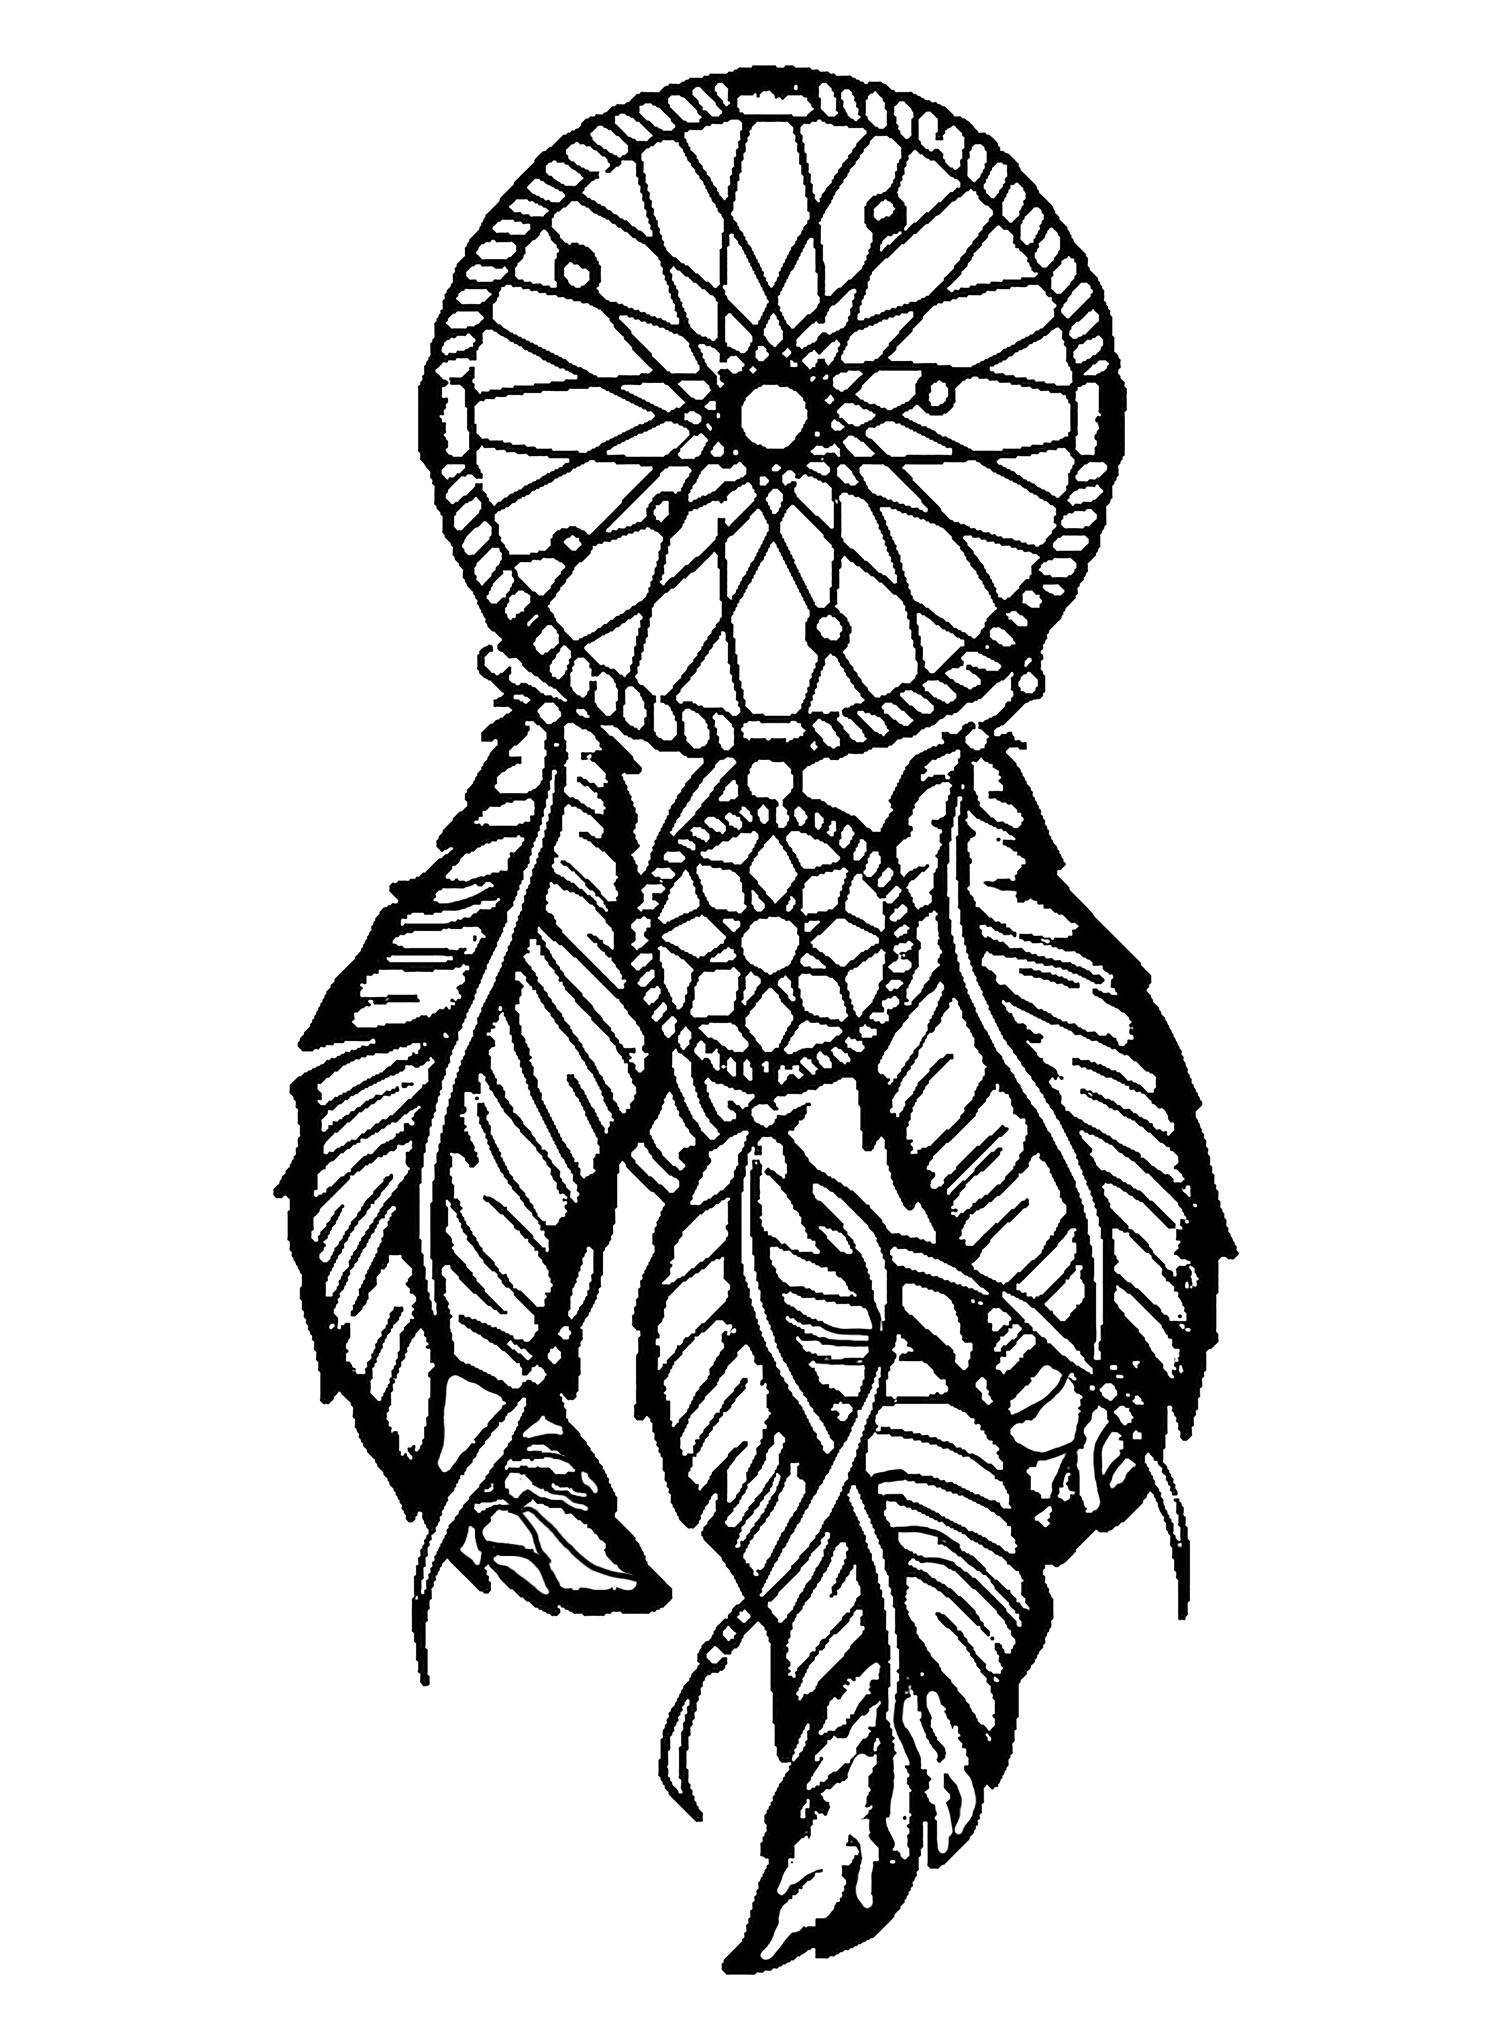 Dreamcatcher Printable Coloring Pages  Dreamcatcher big feathers Dreamcatchers Adult Coloring Pages